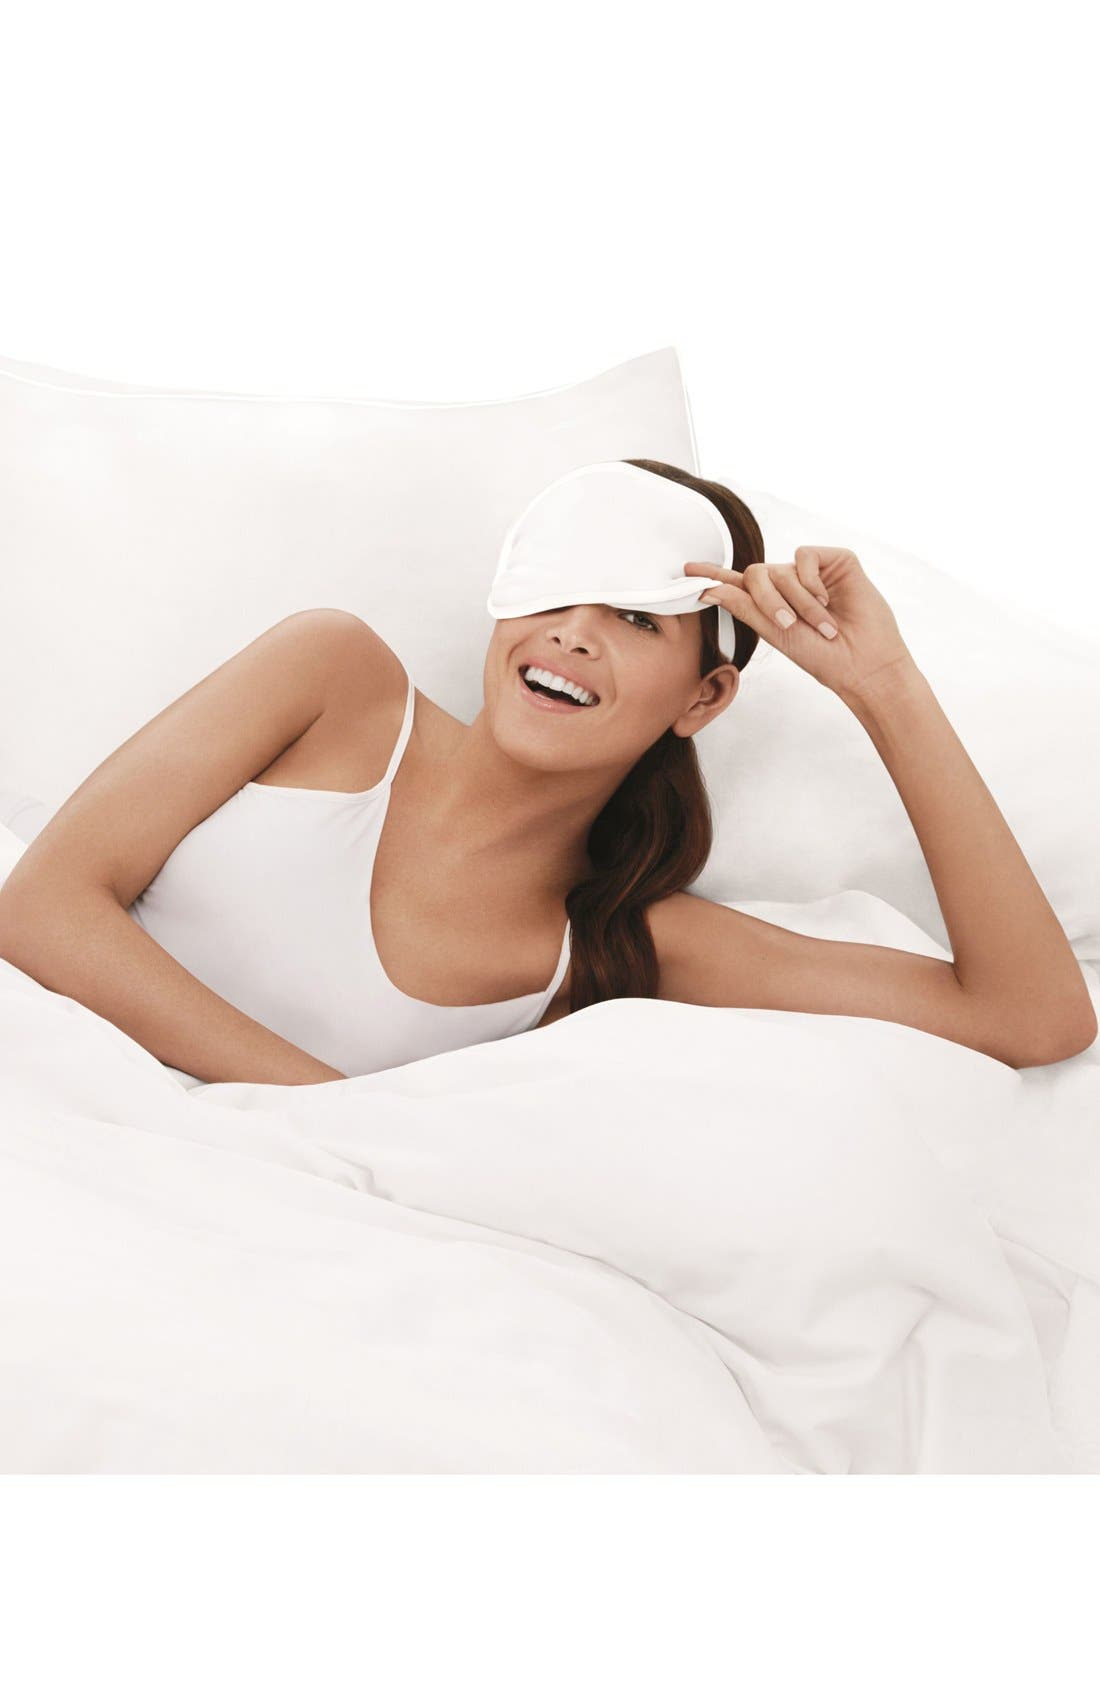 ME,                             Glow Beauty Boosting Pillowcase,                             Alternate thumbnail 3, color,                             000